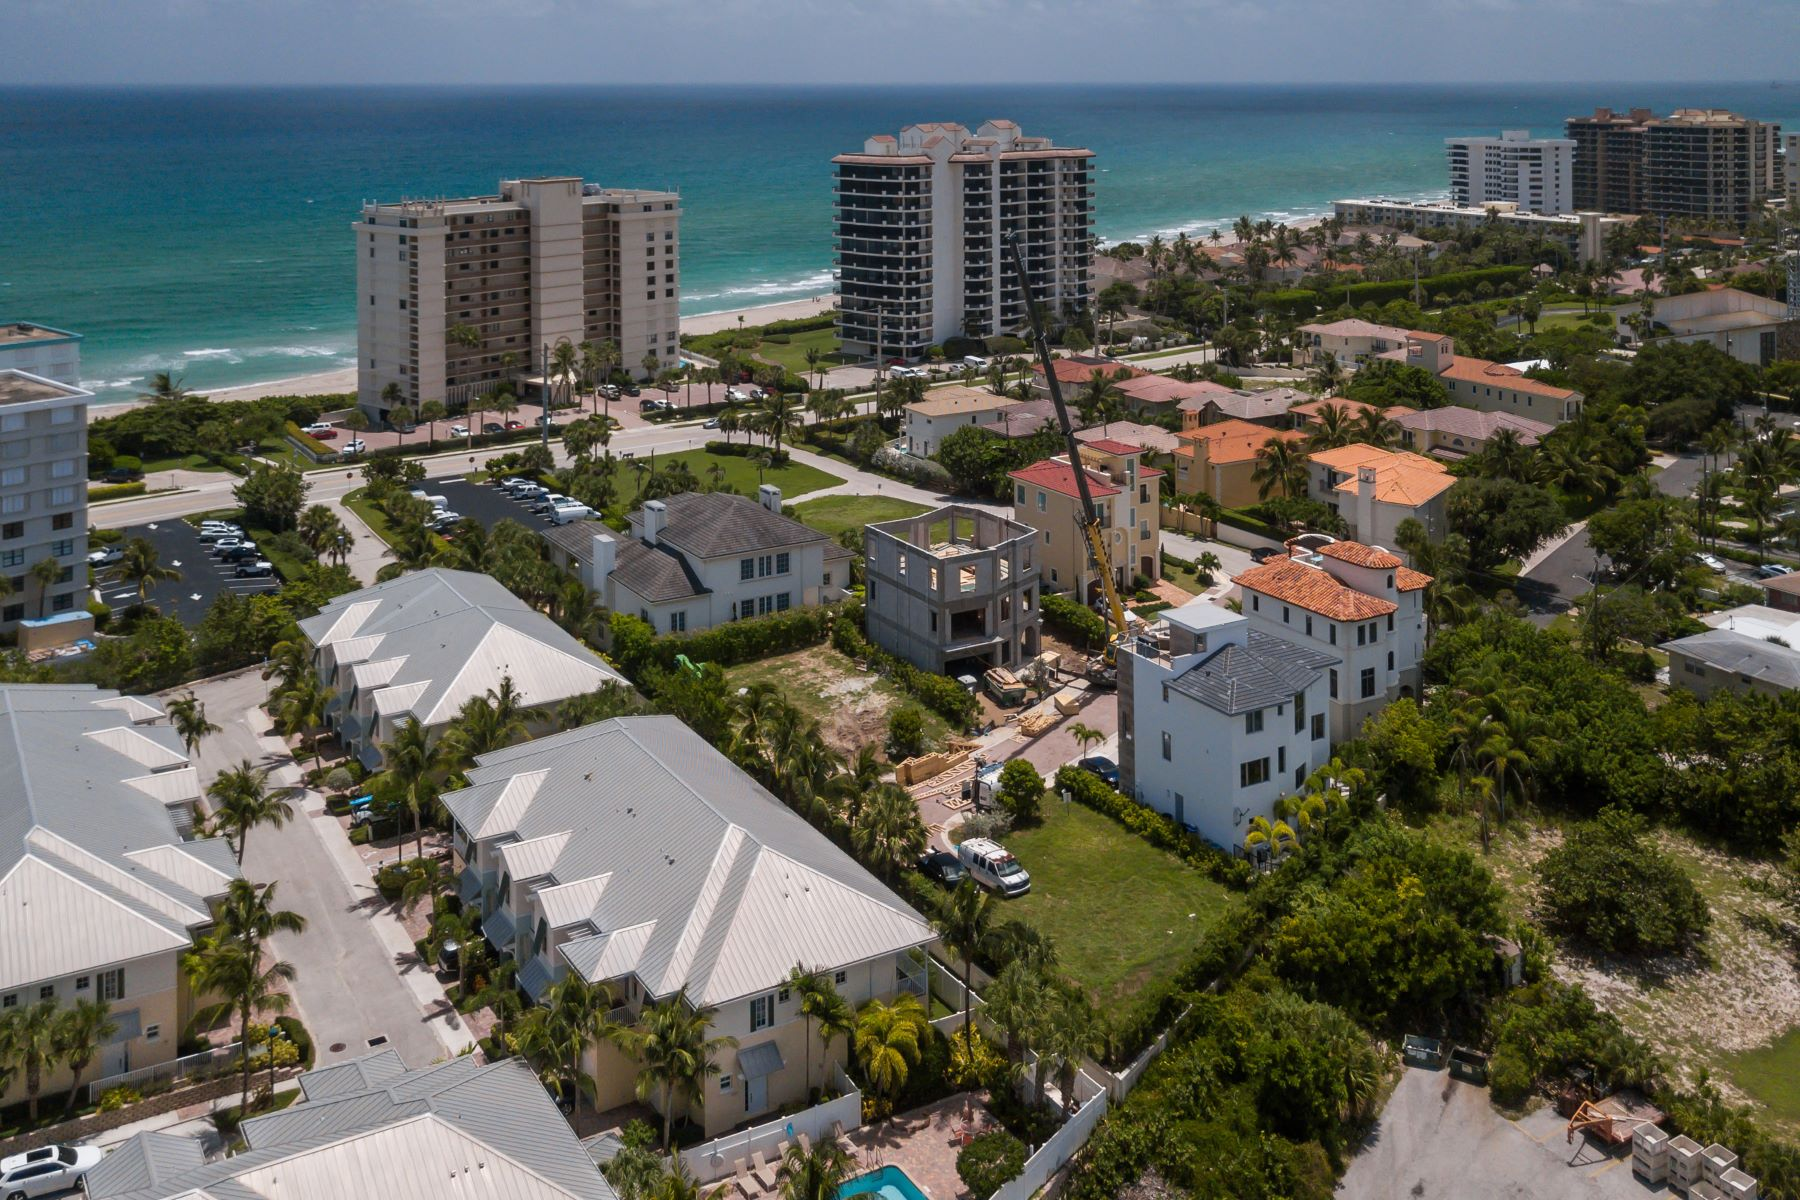 Single Family Homes for Sale at 842 Ocean Side Drive Juno Beach, Florida 33408 United States